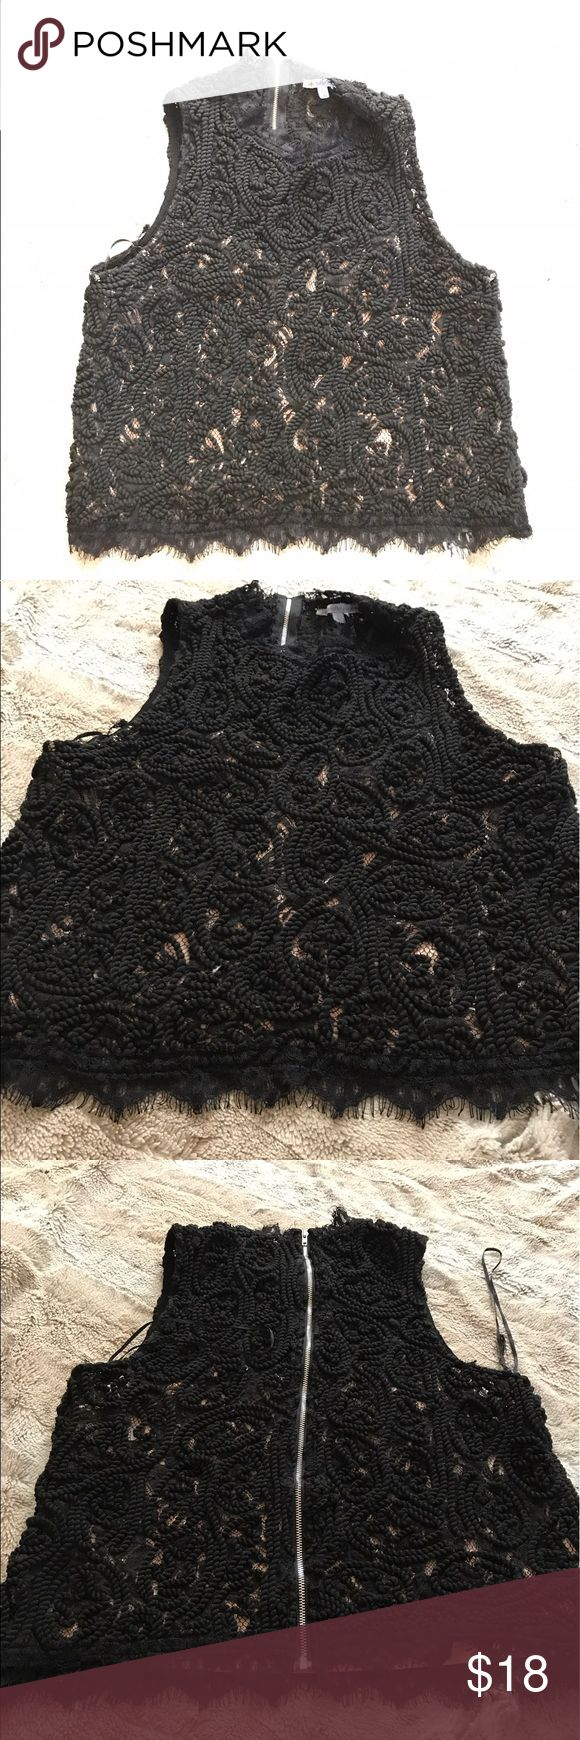 Edgy Black Lace/Textured Crop Top Be bold in this textured/ Lace black crop top from Charlotte Russe. Perfect for work or happy hour after. Full zipper up the back for added flair and comfort. In great used condition. Charlotte Russe Tops Crop Tops